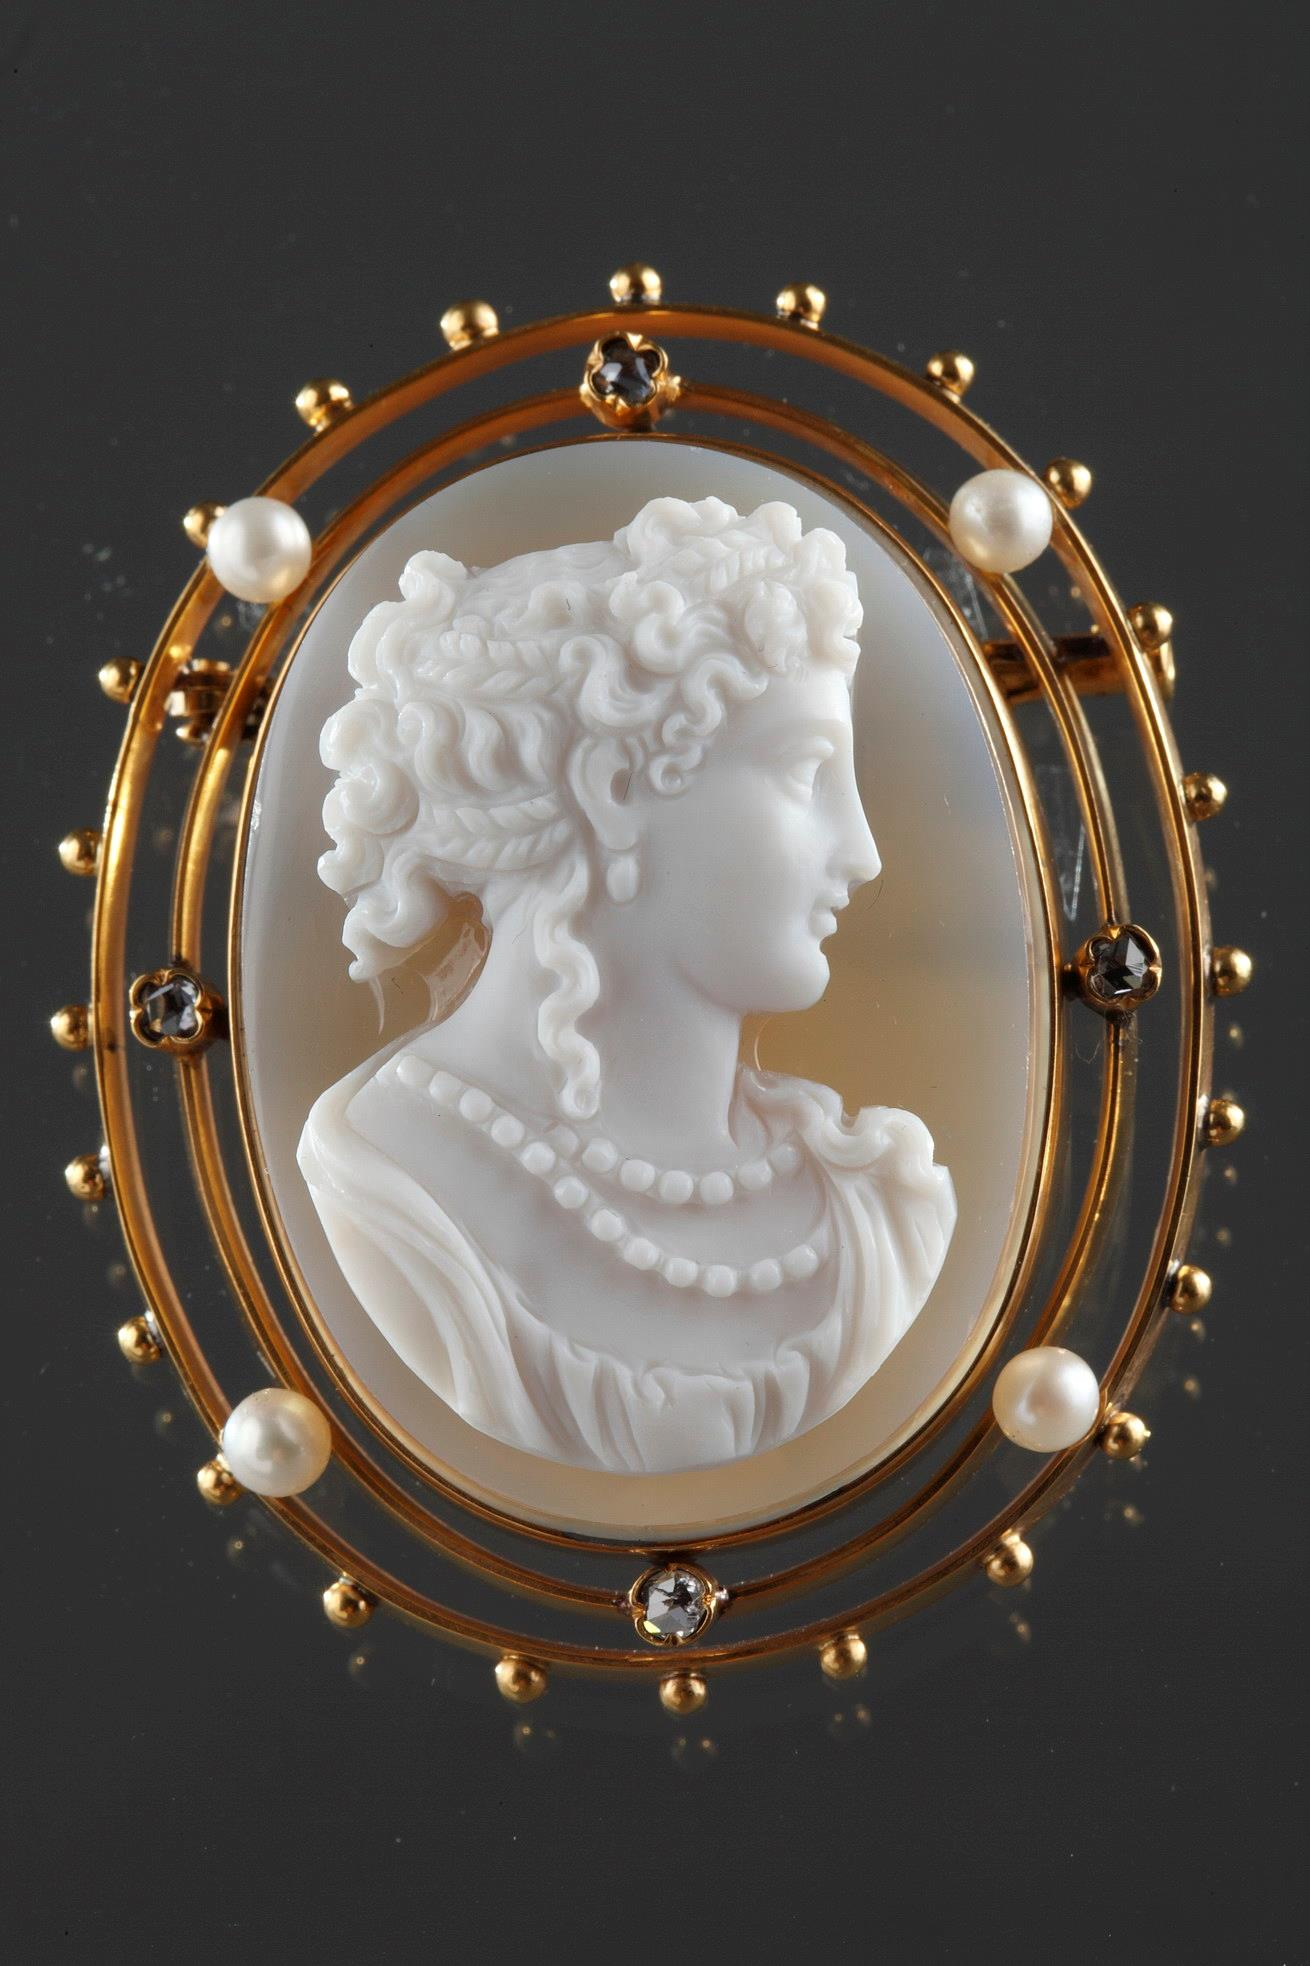 19th century Gold Brooch with Pearl, diamonds and Cameo on Agate.